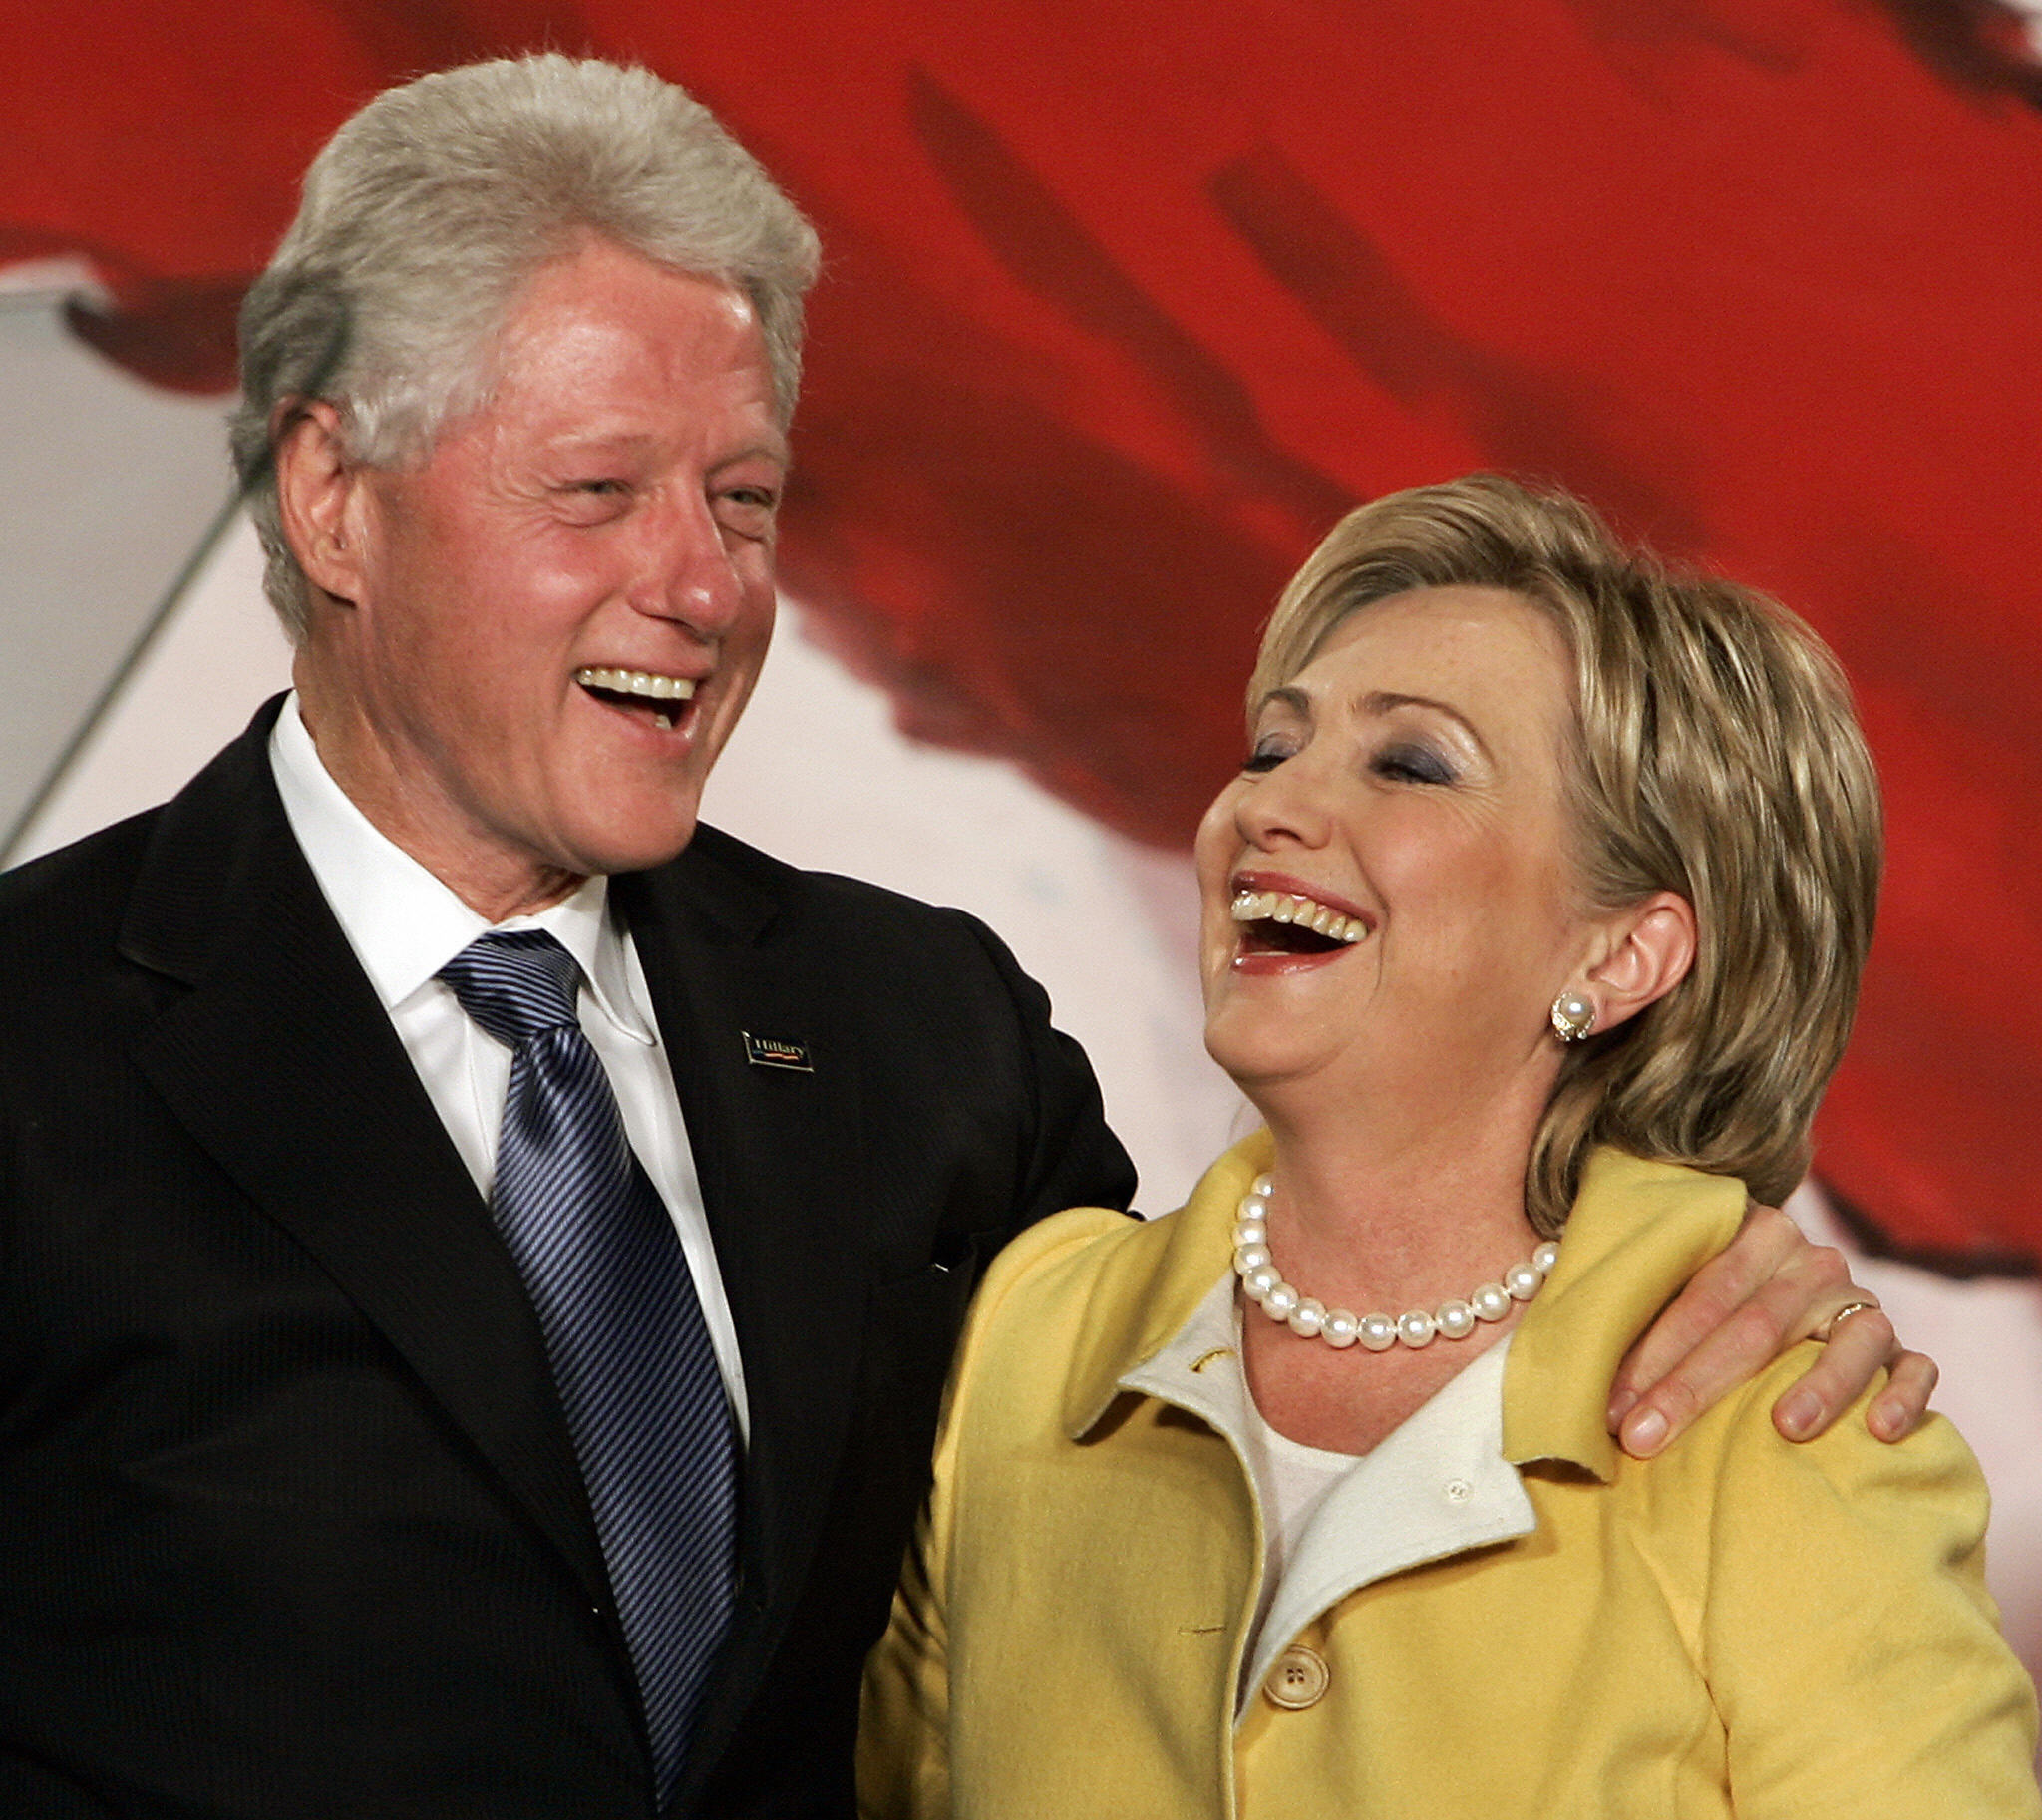 New York Sen. Hillary Clinton and her husband former President Bill Clinton smile after she won her second term, during a rally held by New York Democrats, in New York, on Nov. 7, 2006.